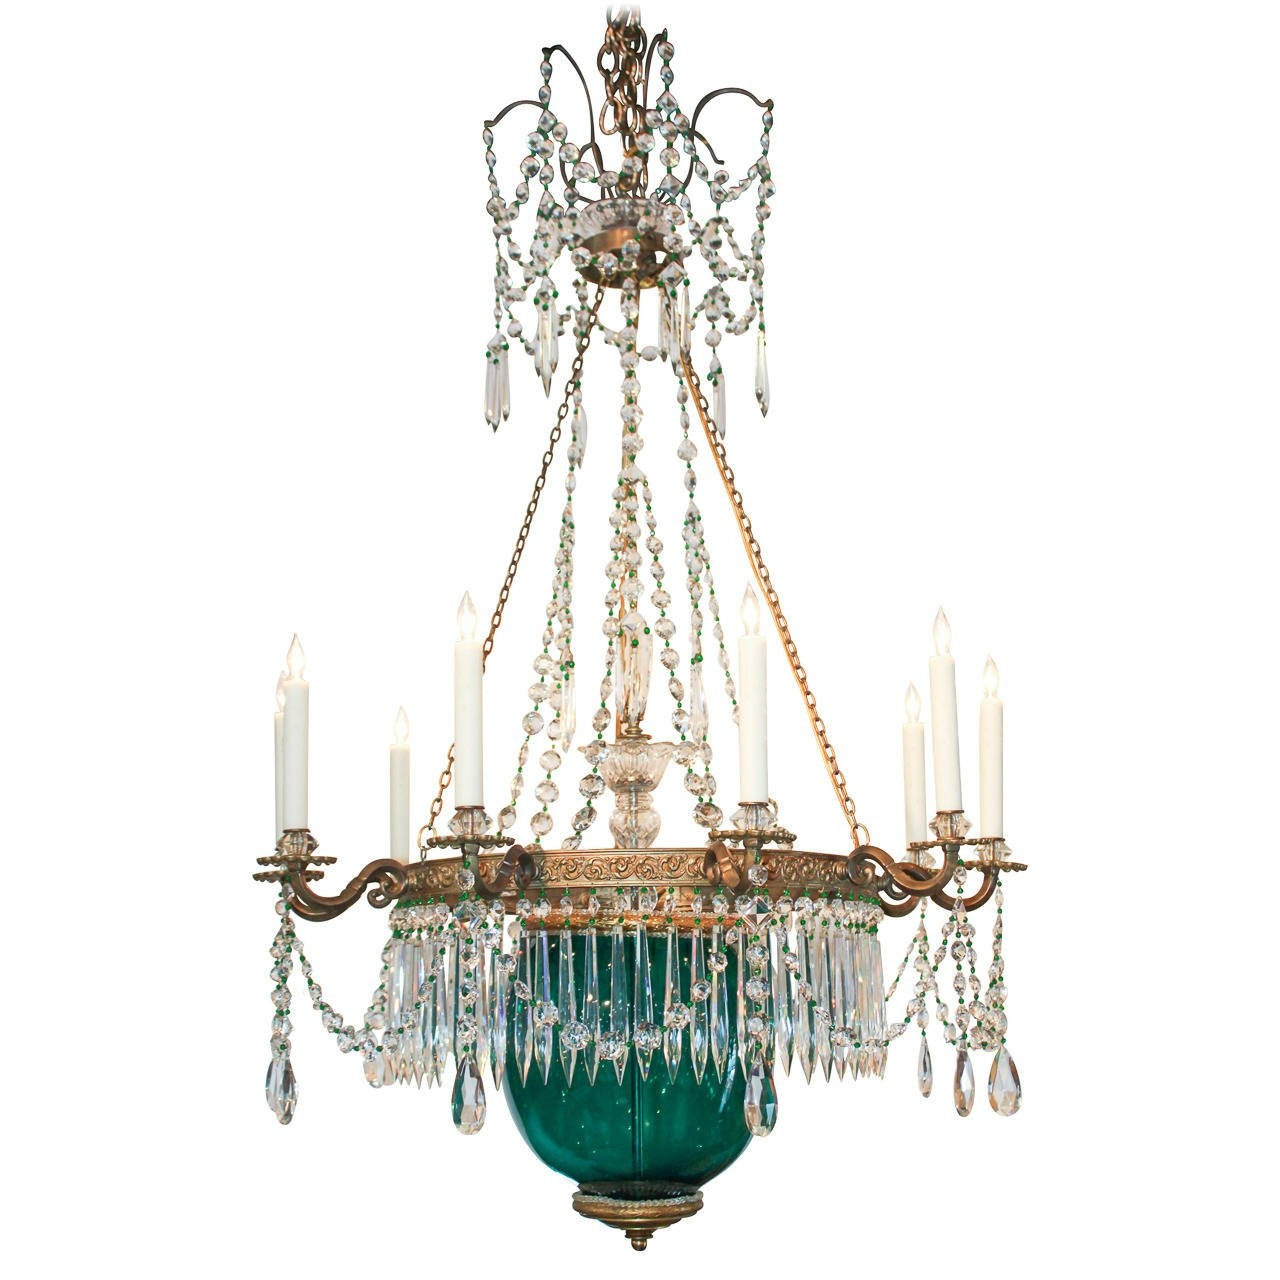 Chandelier Astonishing Colored Glass Chandelier Gypsy Chandeliers Pertaining To Gypsy Chandeliers (View 19 of 25)